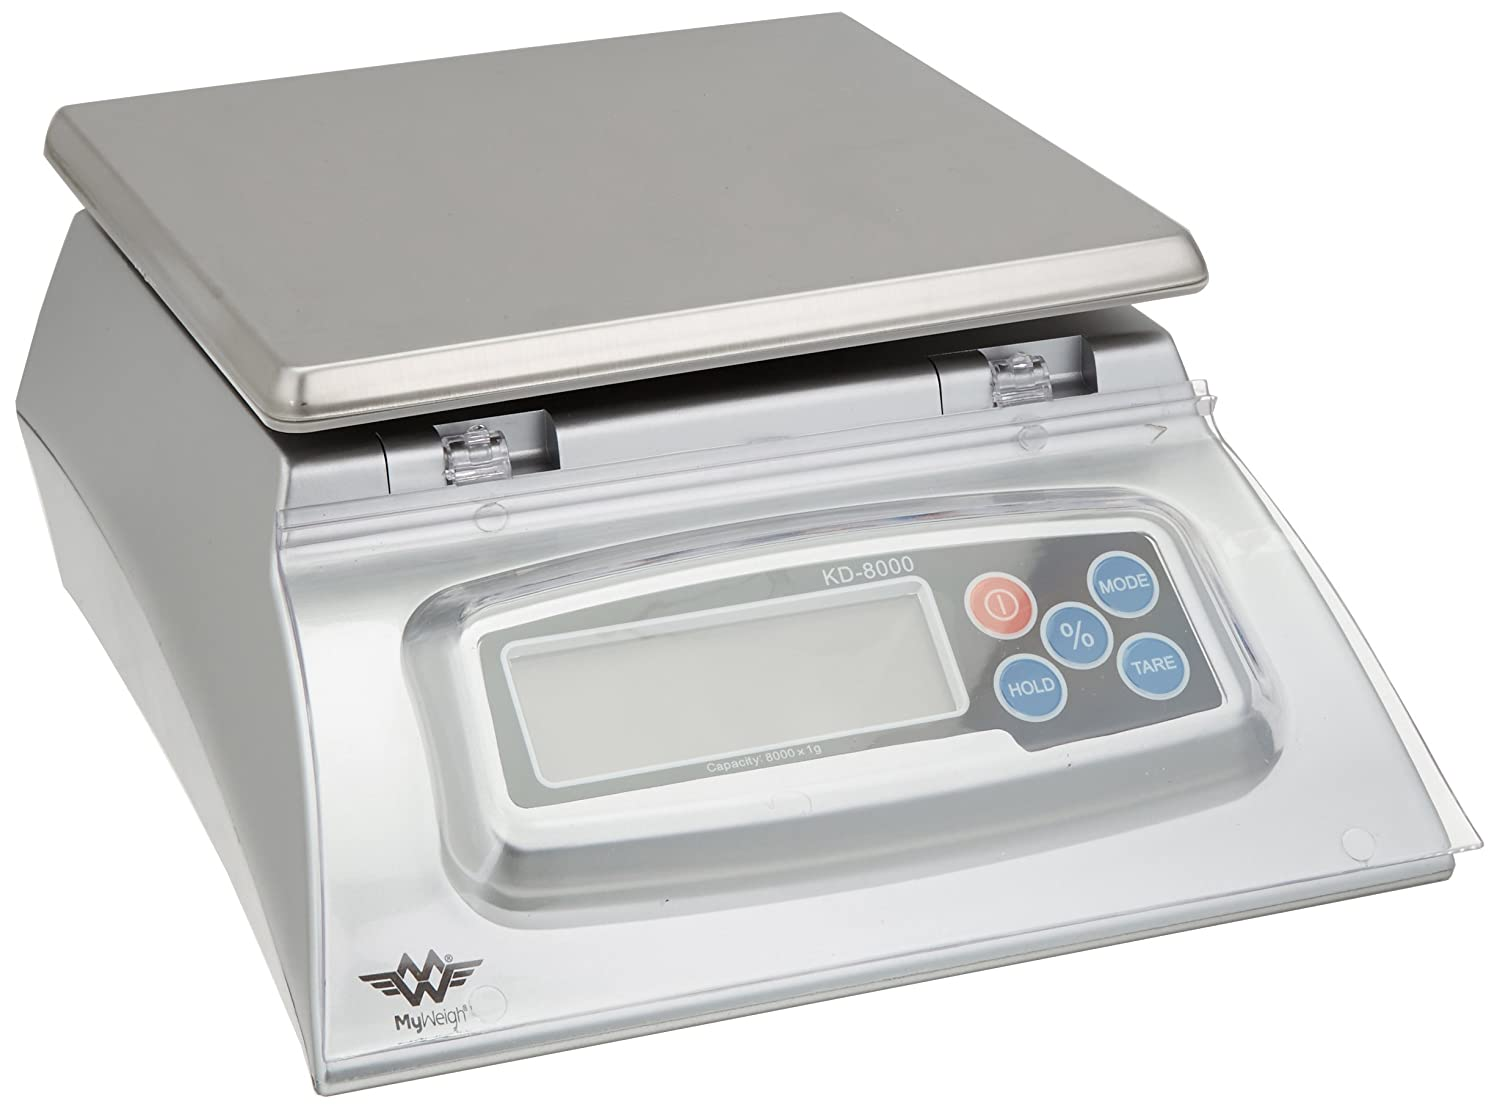 Amazon.com: Kitchen Scale - Bakers Math Kitchen Scale - KD8000 Scale ...